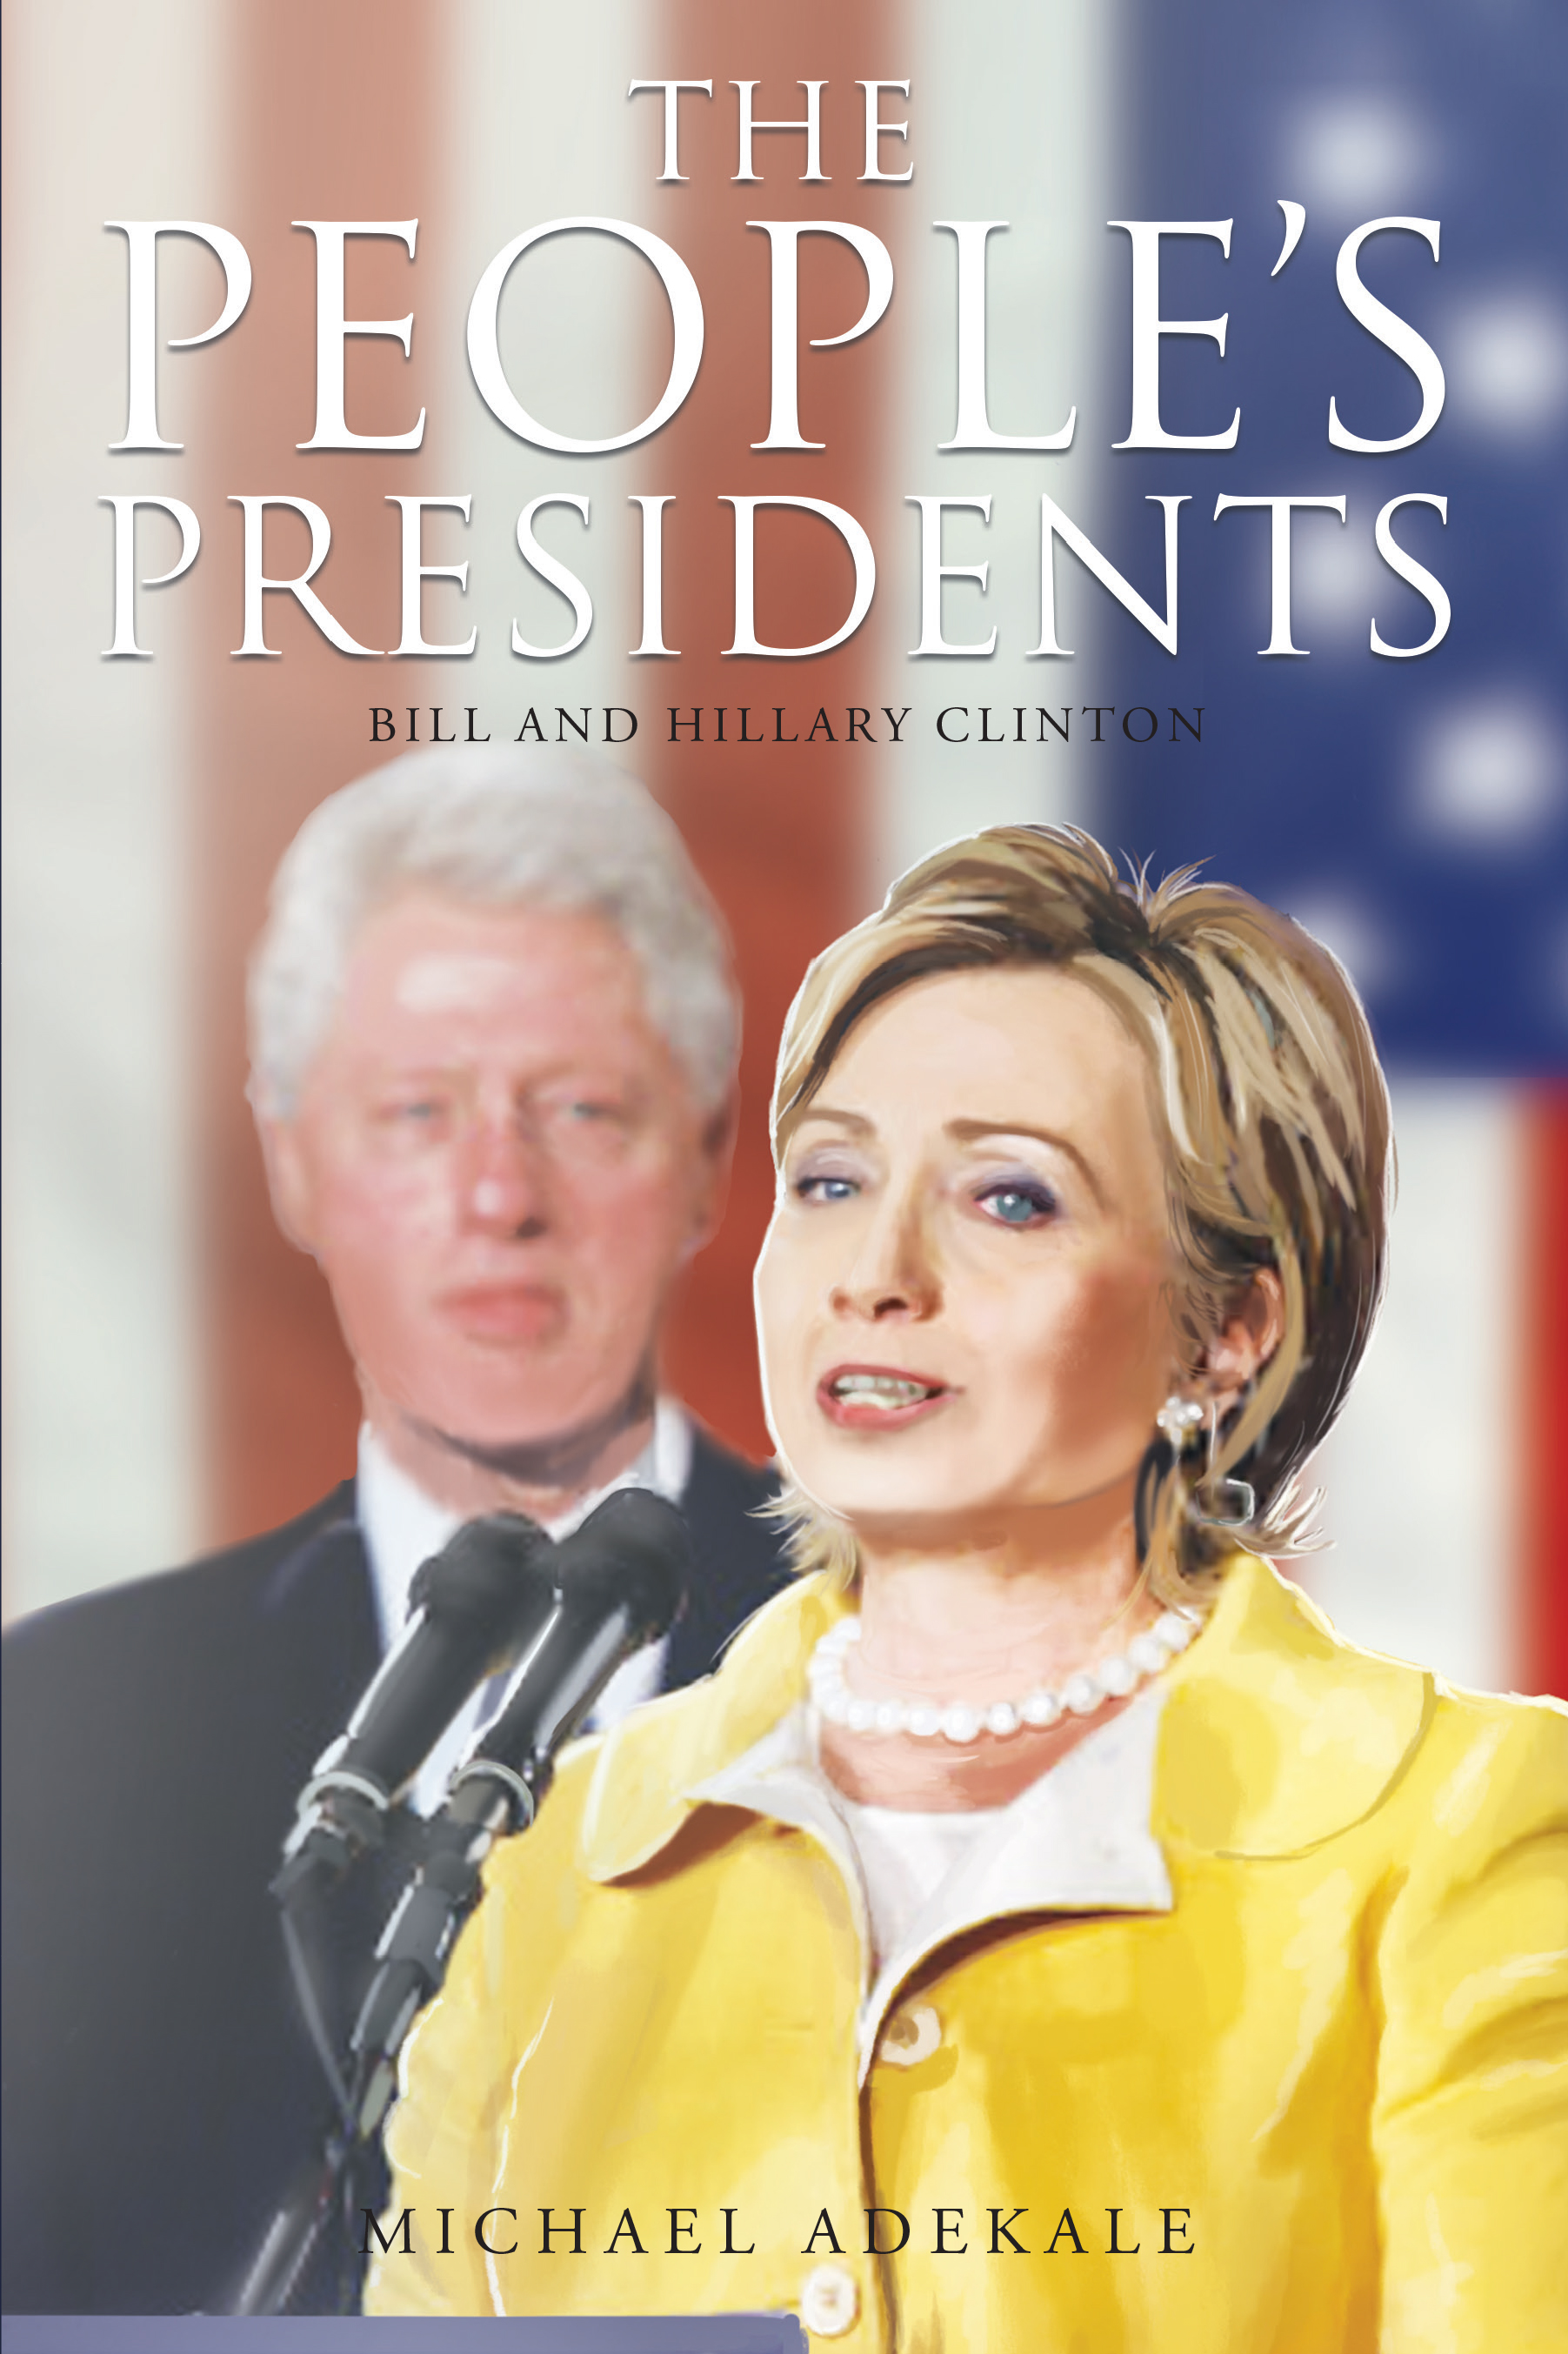 an introduction to the history and life of president clinton Private lives and get on with our national life president william jefferson clinton, aug 17,19981 introduction a recursive feature of the clinton cases has been an.